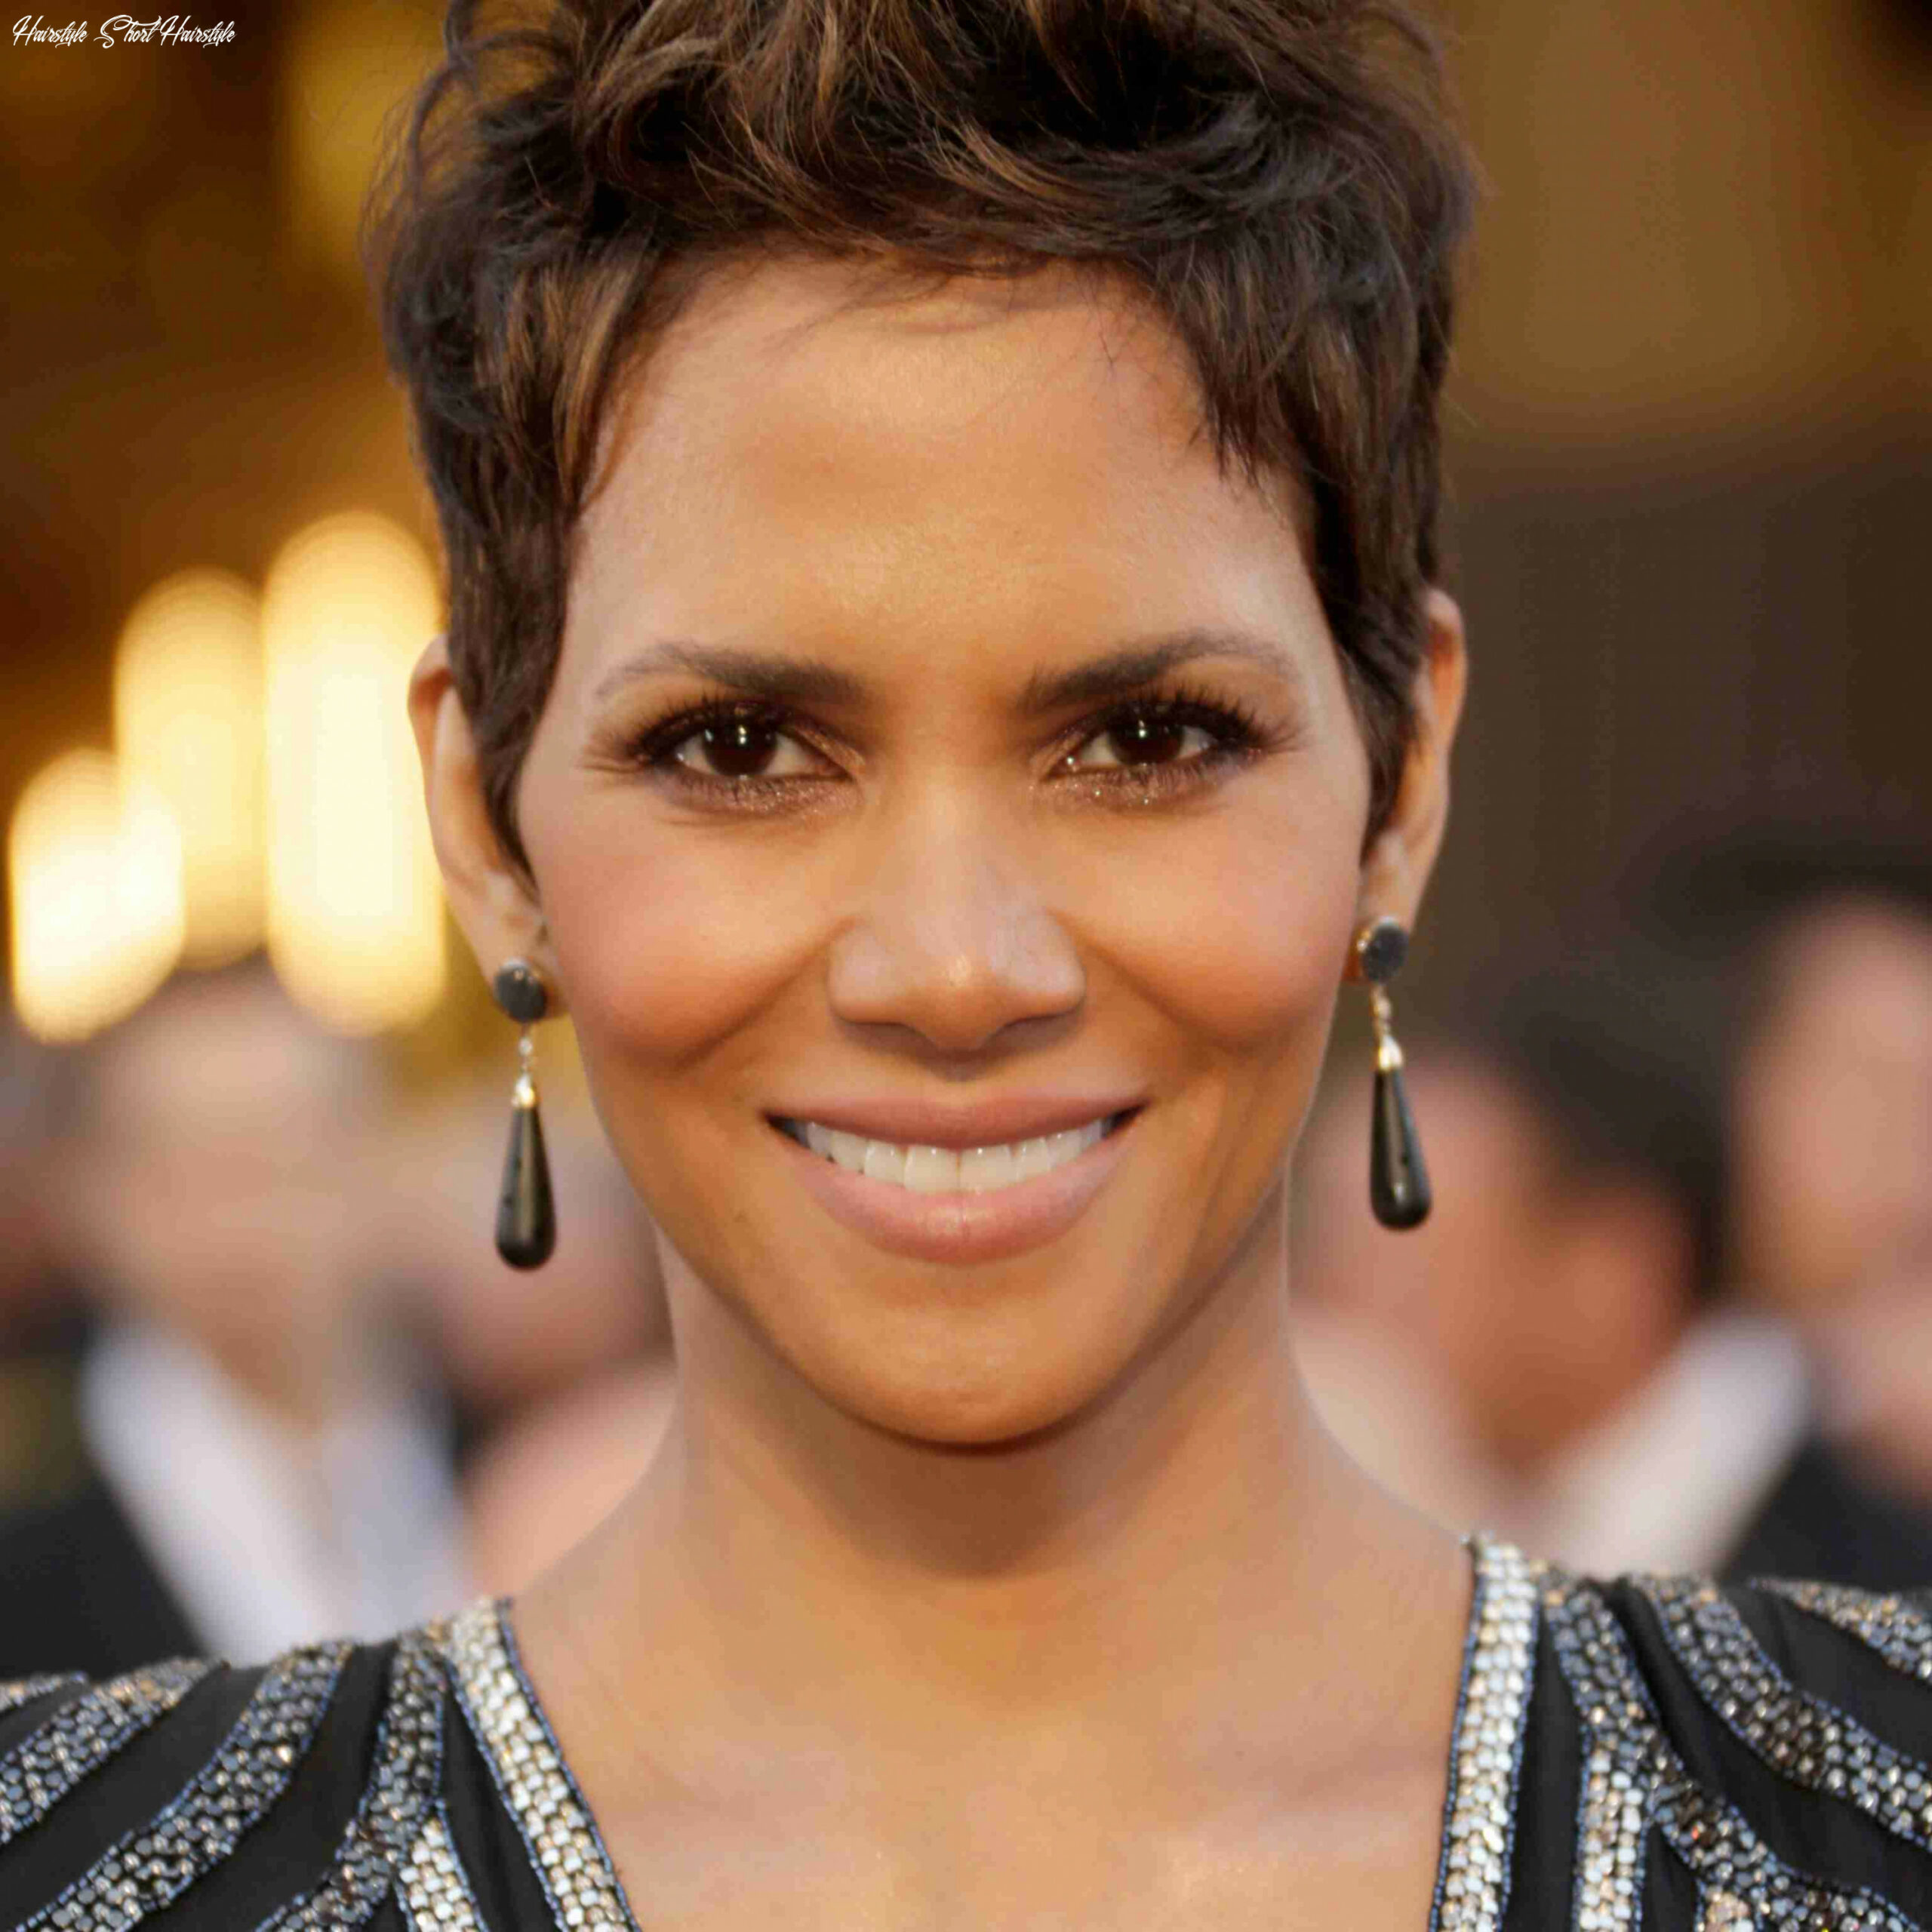 10 classic and cool short hairstyles for older women hairstyle short hairstyle